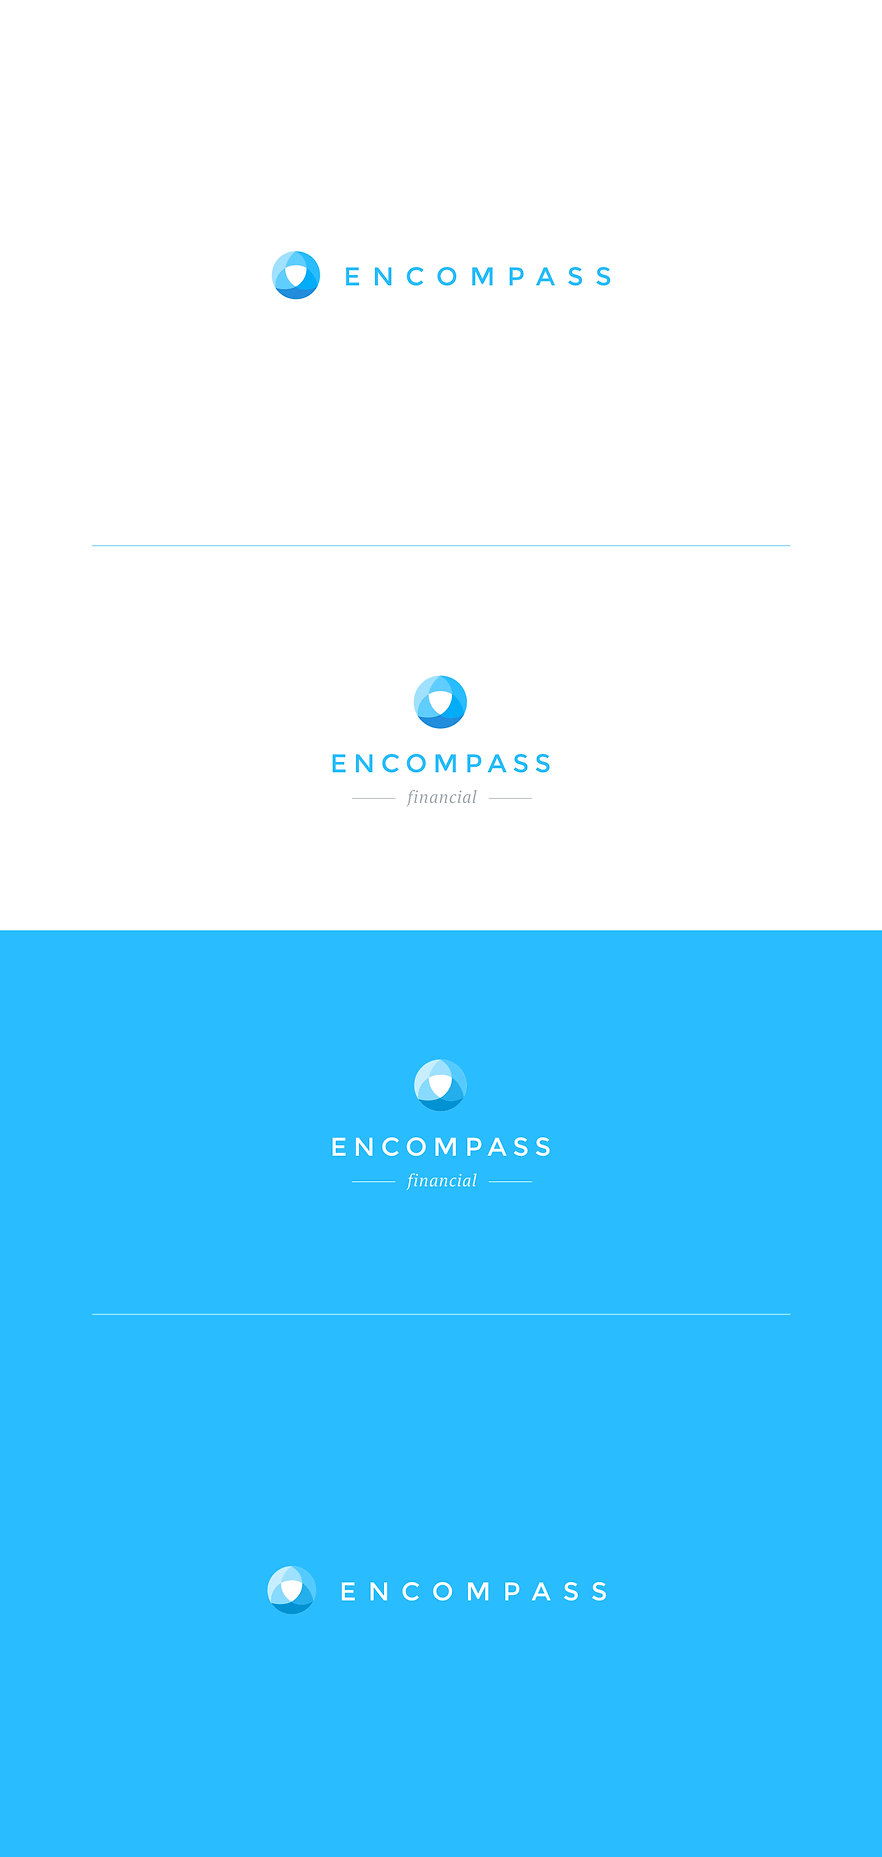 Encompass branding